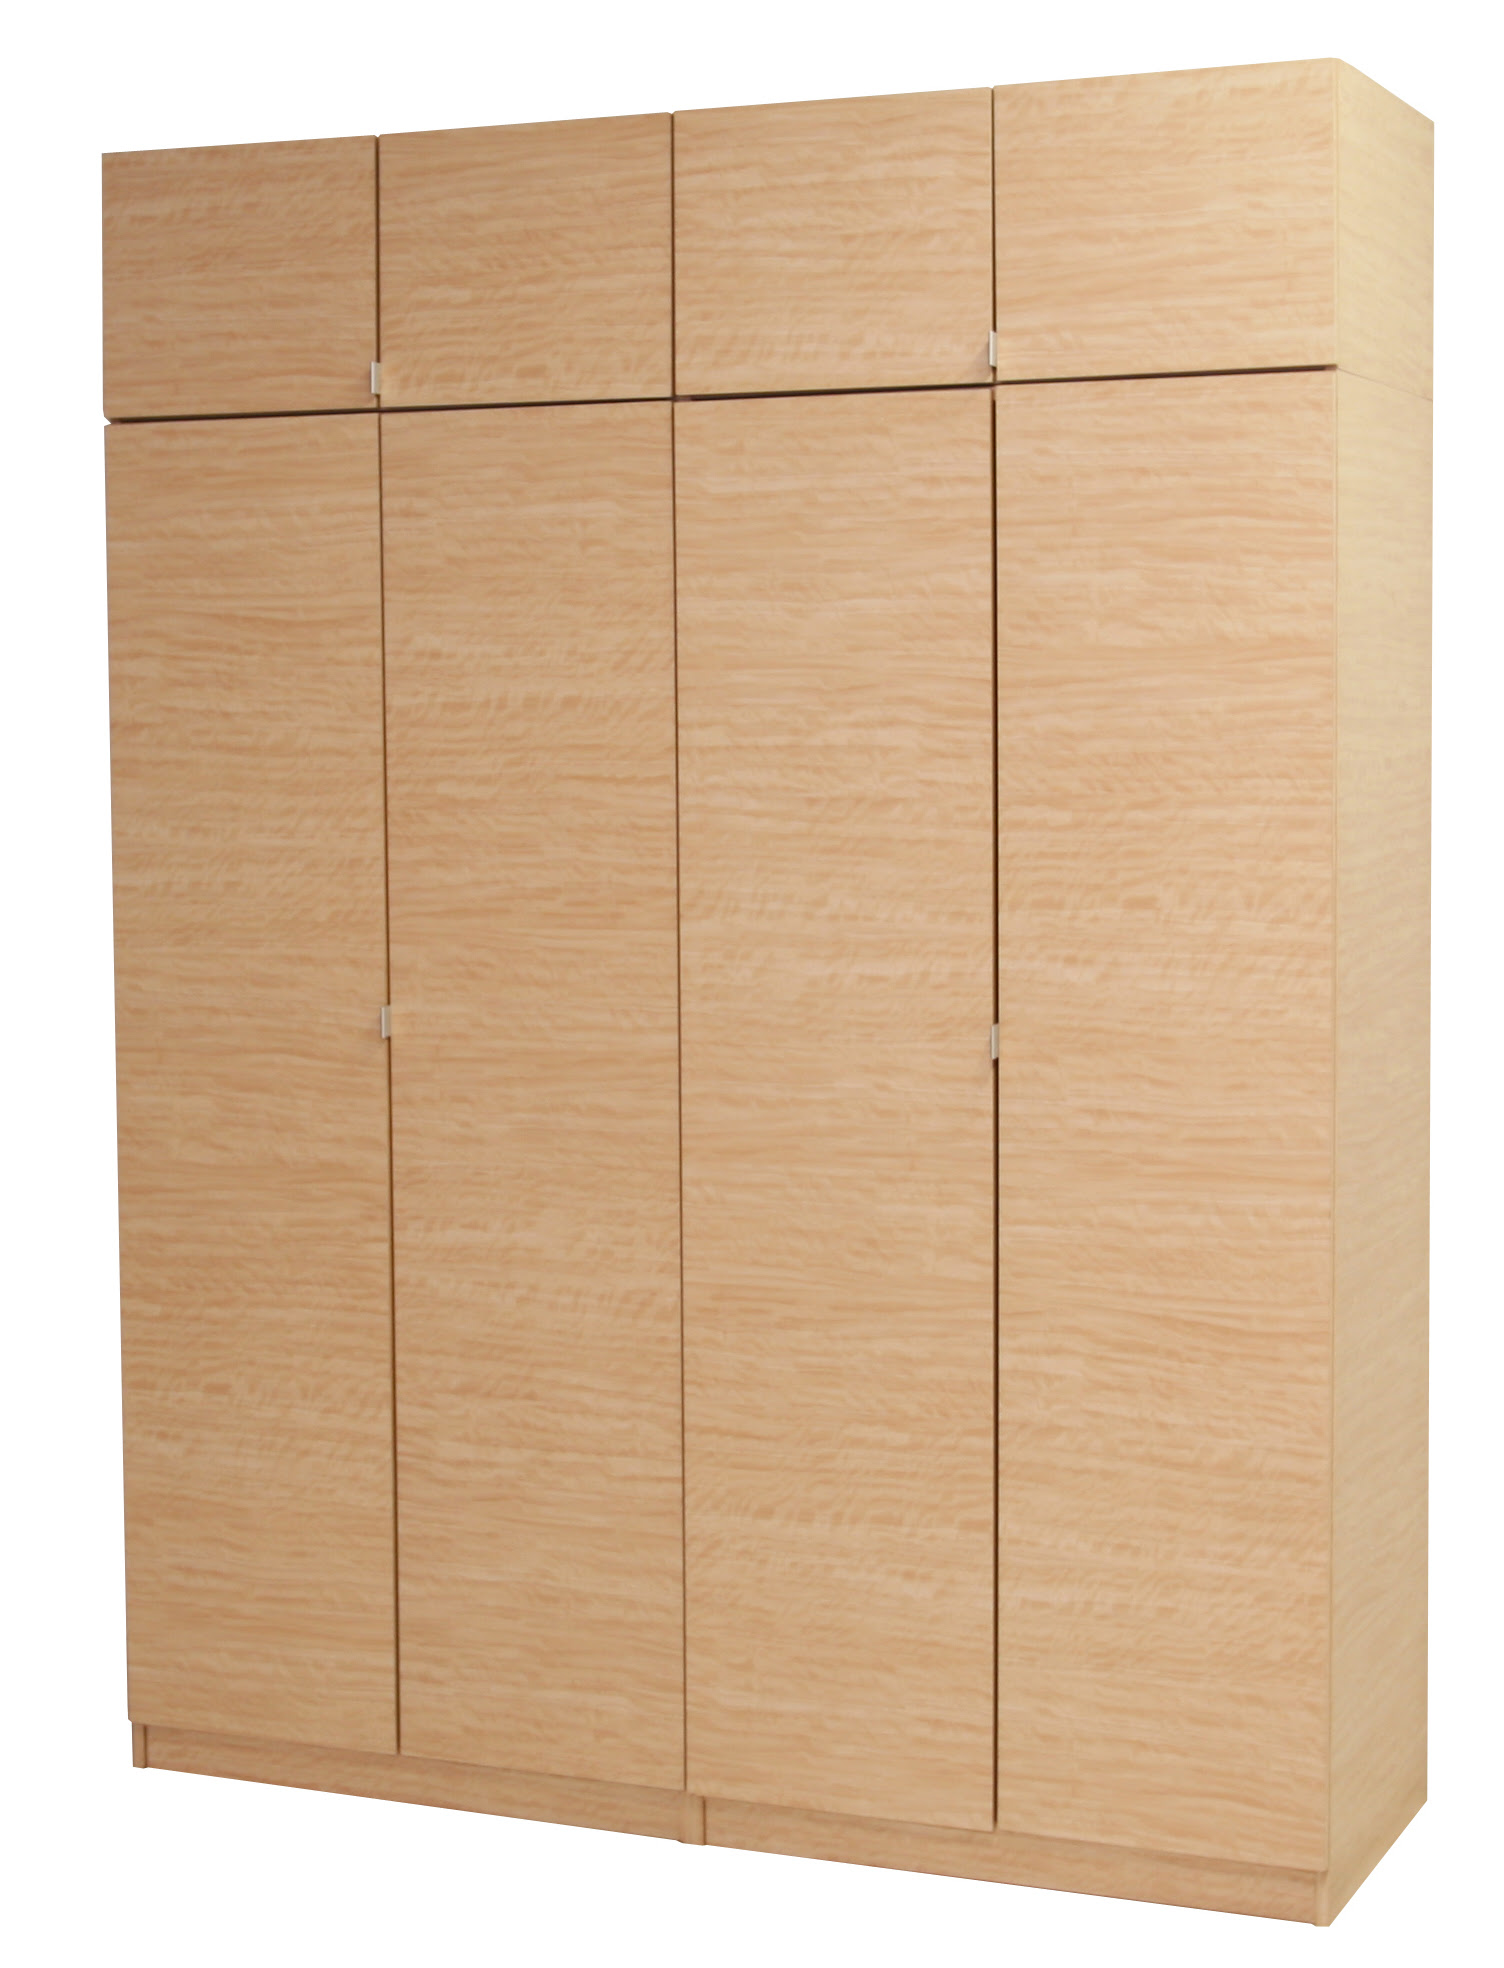 Closets For Rooms Big and Small